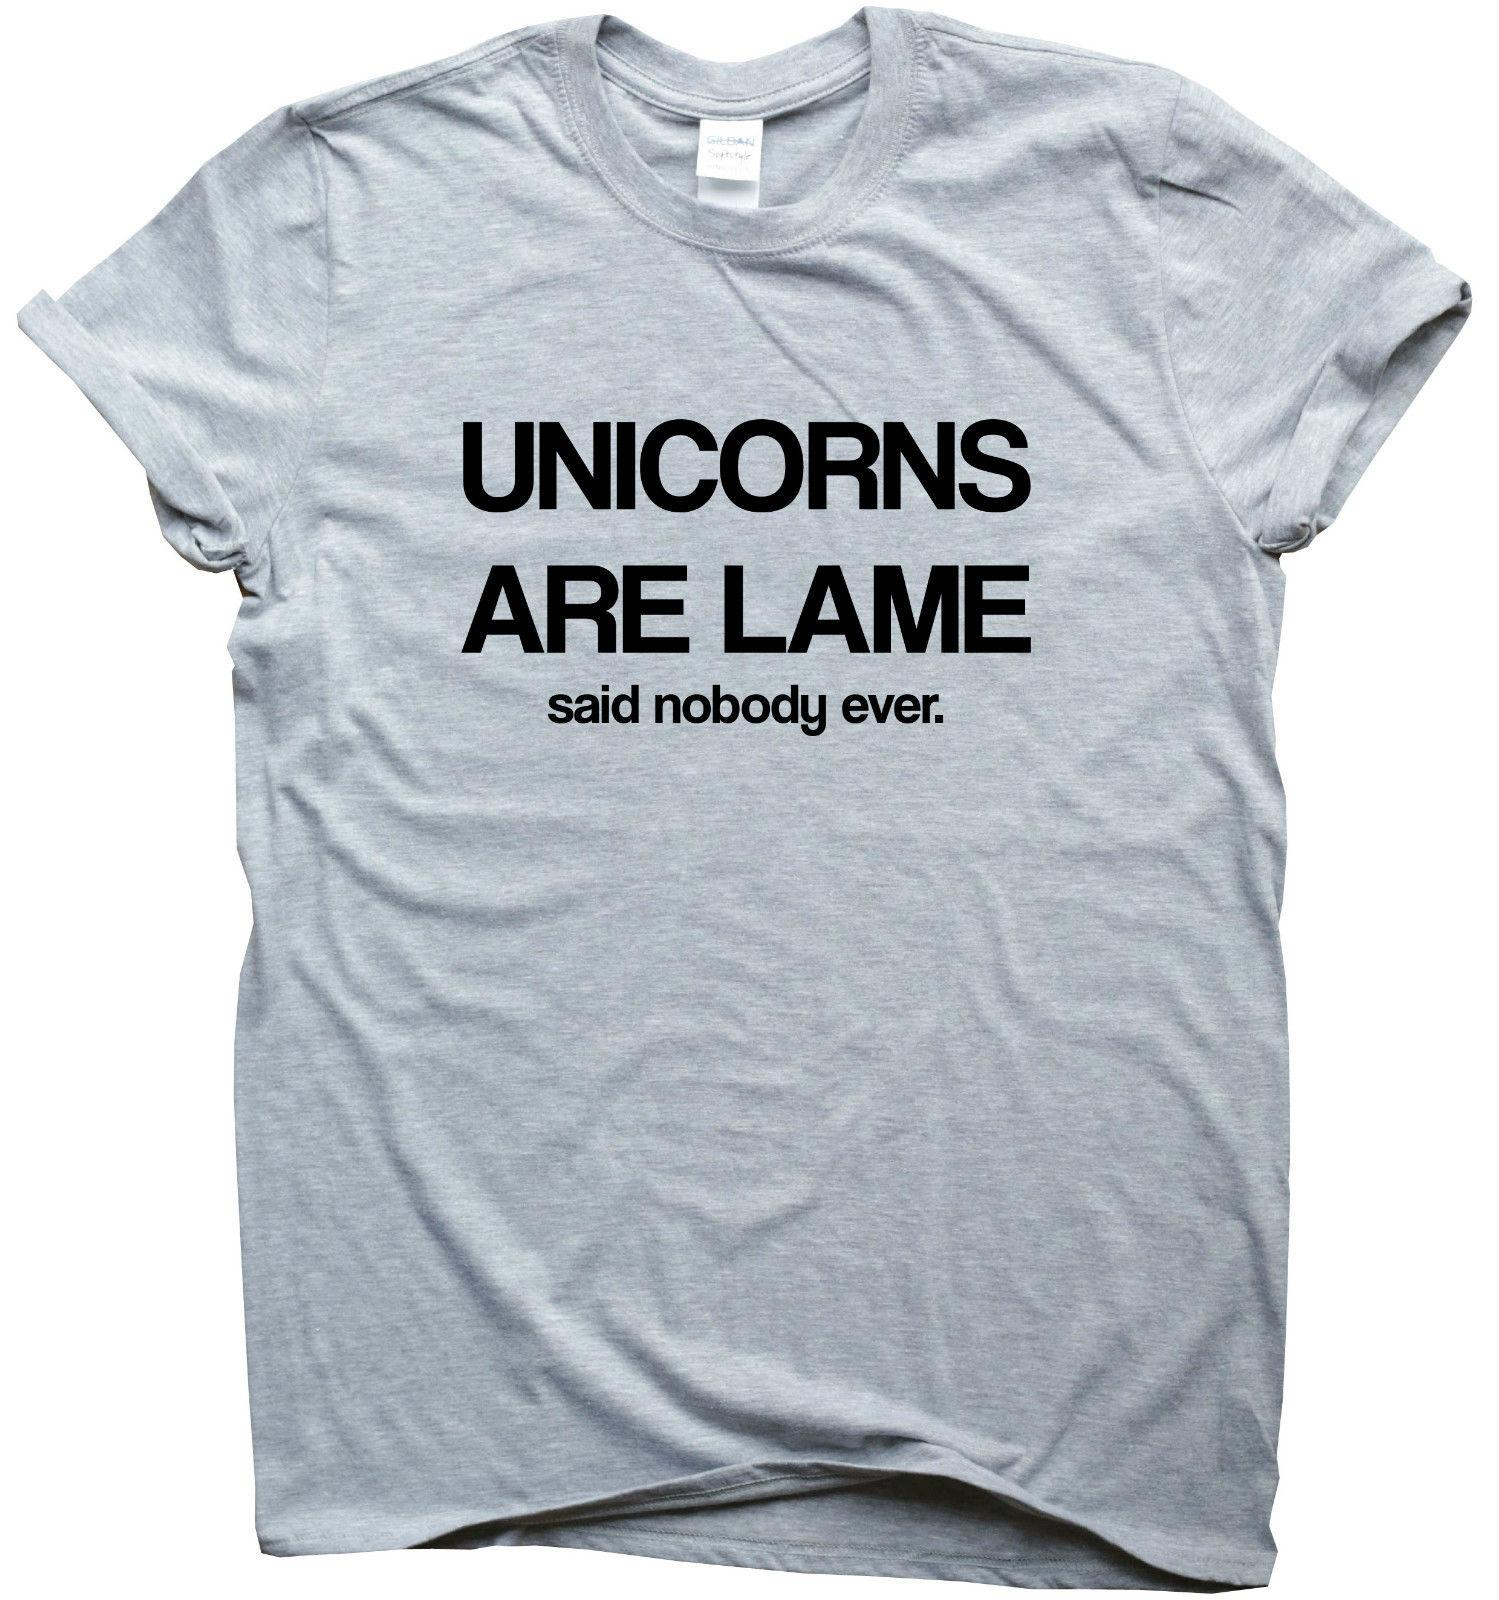 c51410233 Unicorn Are Lame Funny T Shirts Printed Humour Gift Sarcastic Slogan Top T  Shirt Dirty T Shirts Graphic Tee Shirts From Sixcup, $16.24| DHgate.Com